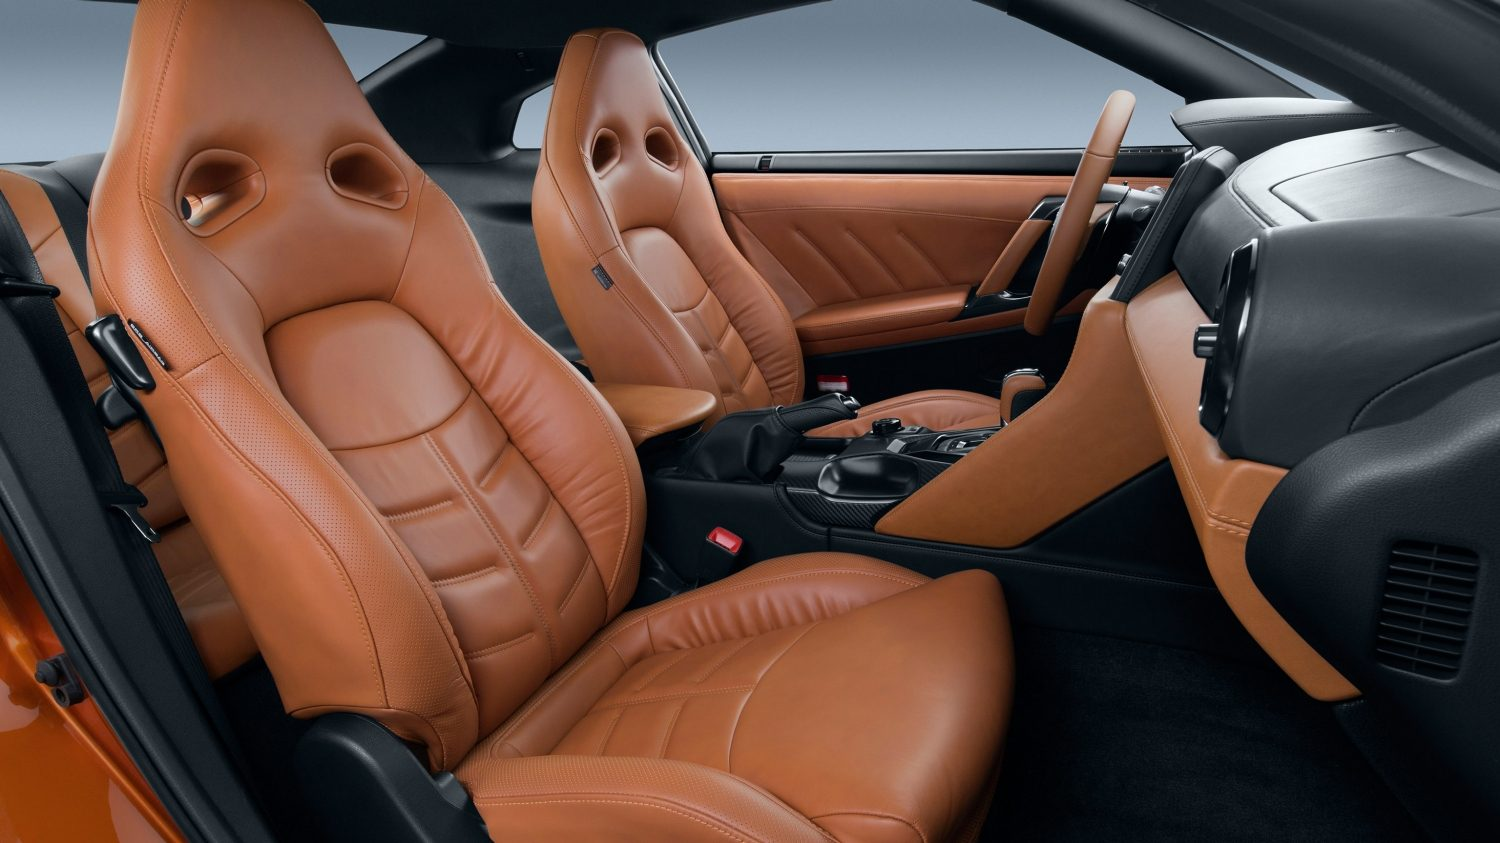 GTR interior profile